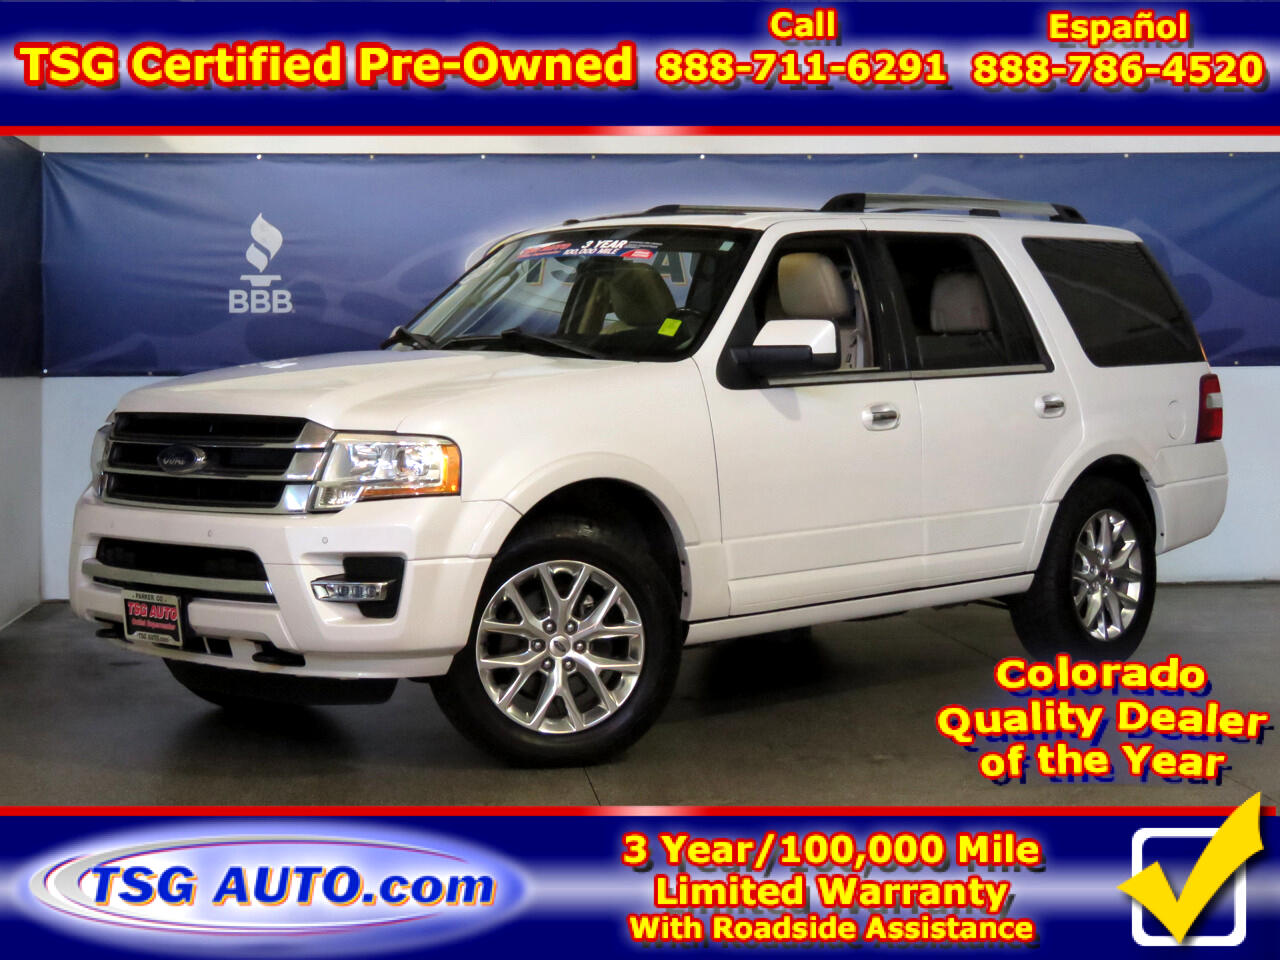 2015 Ford Expedition Limited 3.5L V6 Turbo 4WD W/Leather ThirdRow